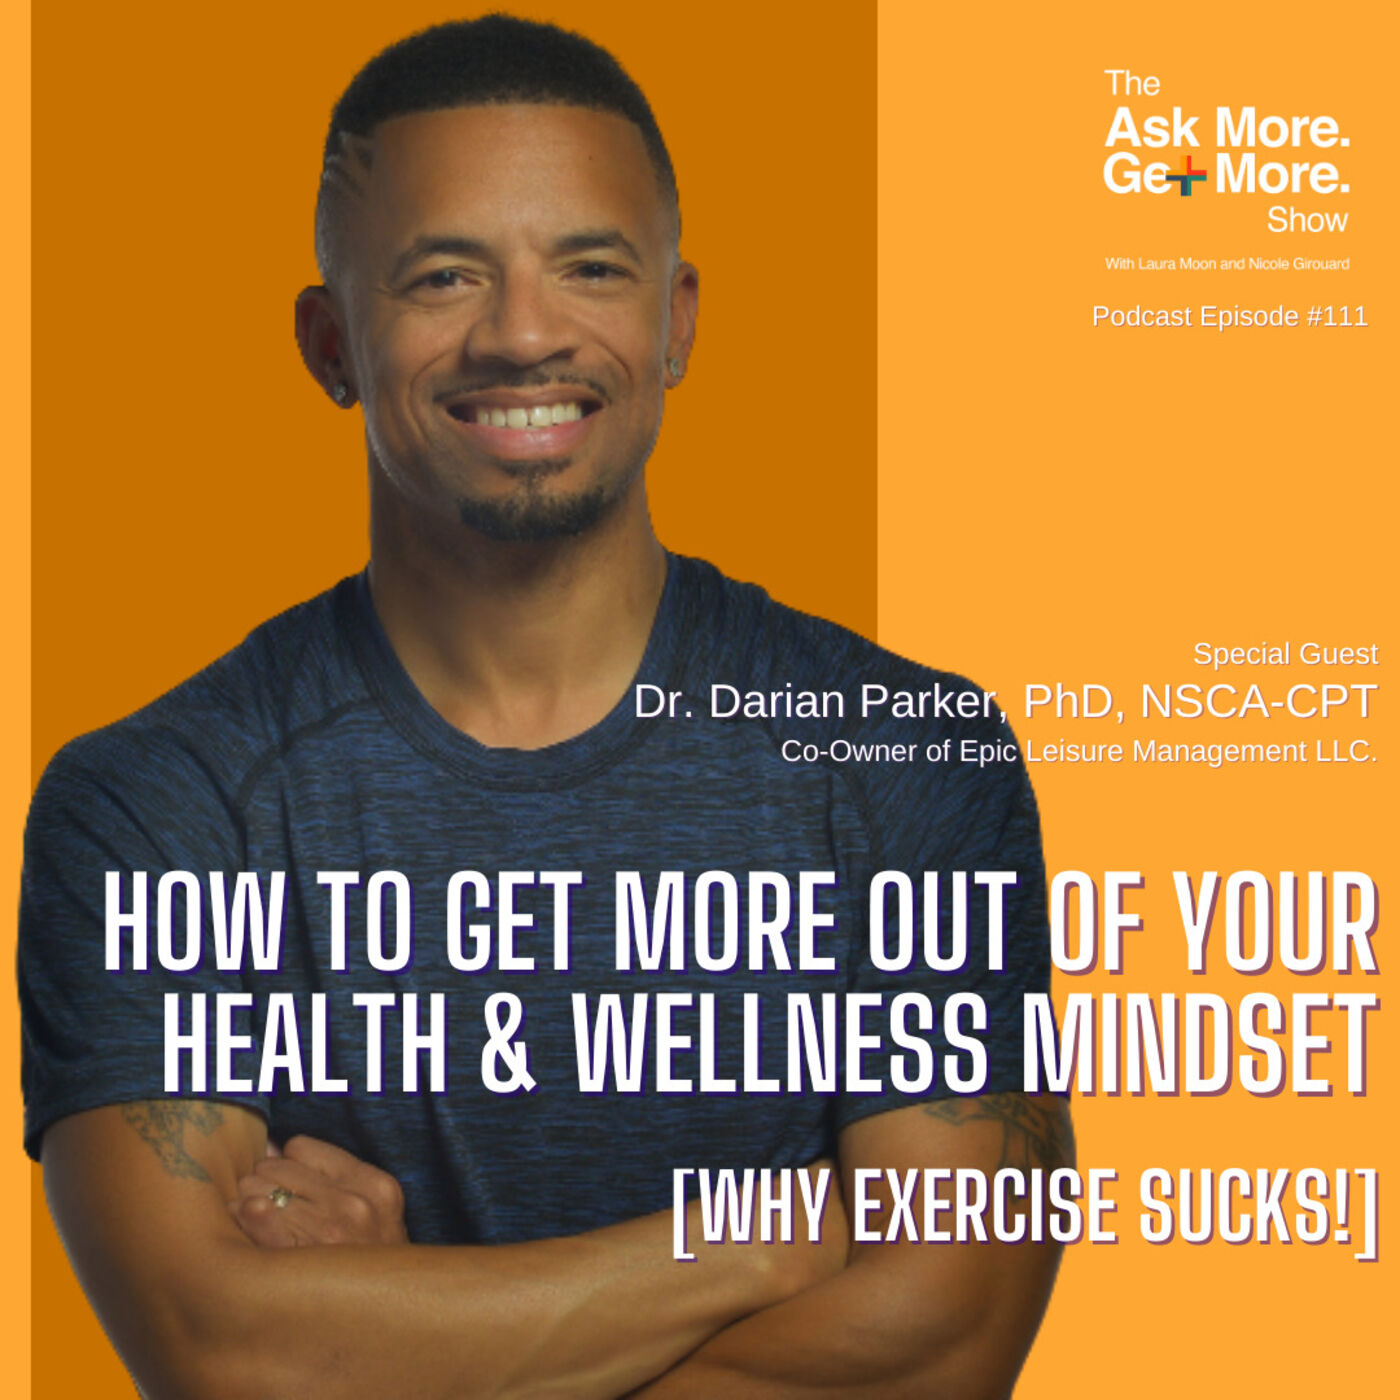 This is Why Exercise SUCKS! [Dr. Darian Parker]